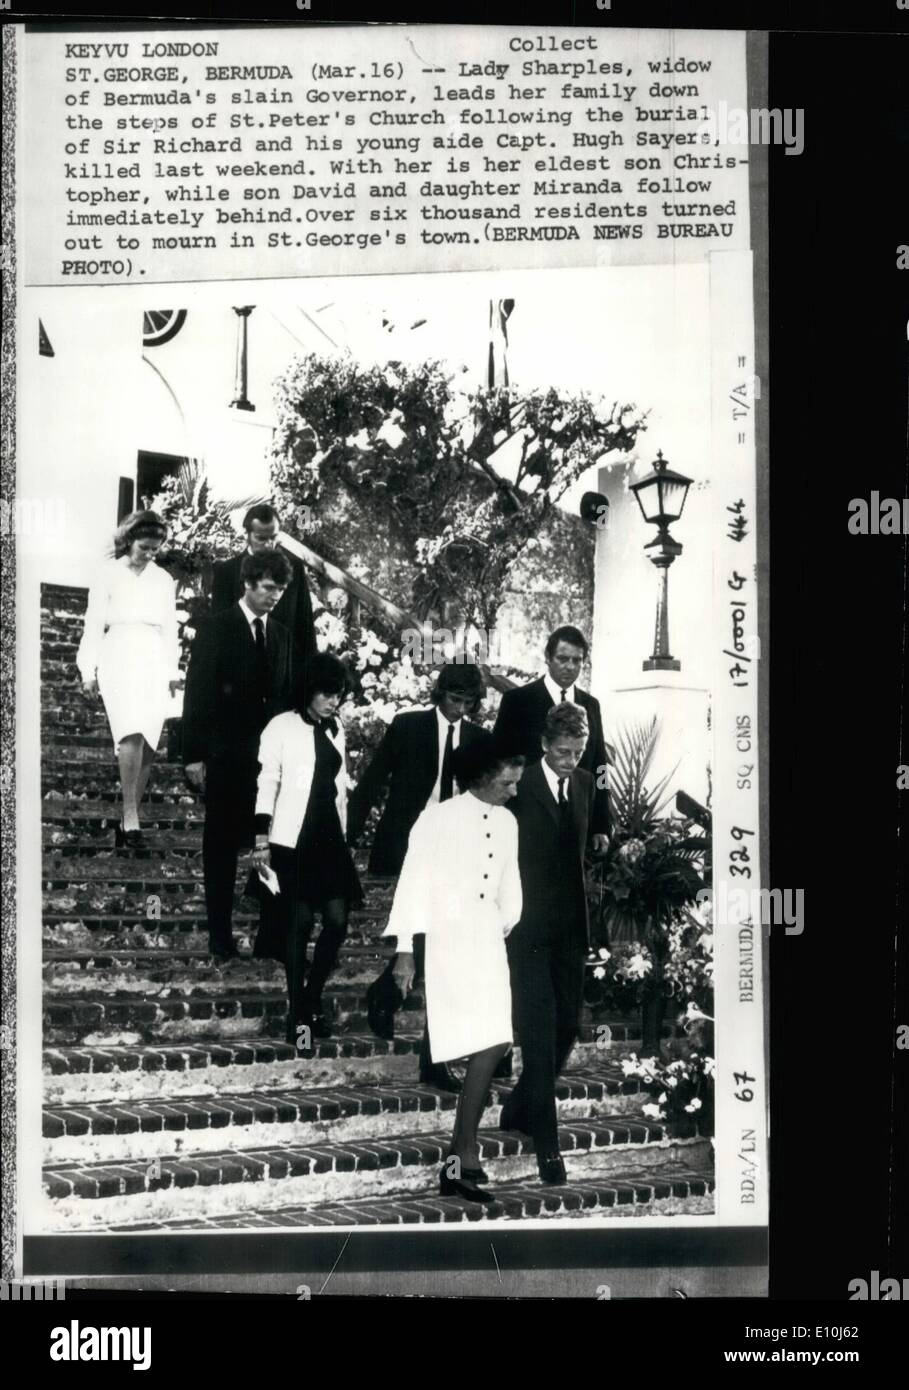 Mar. 03, 1973 - St. George, Bermuda: Lady of Bermuda's slain Governor, leads her family down the steps pf St. Peter's Church following the burial of Sir Richard and his young aide Capt. Hugh Sayers, killed last weekend. With her us her eldest son Christopher, while son David and daughter Miranda follow immediately behind. Over six thousand residents turned out to mourn in St. George's town. Funeral of Slain Governor Of Bermuda: The State Funeral of Sir Richard Sharples, the murdered Governor of Bermudas, took place yesterday - Stock Image